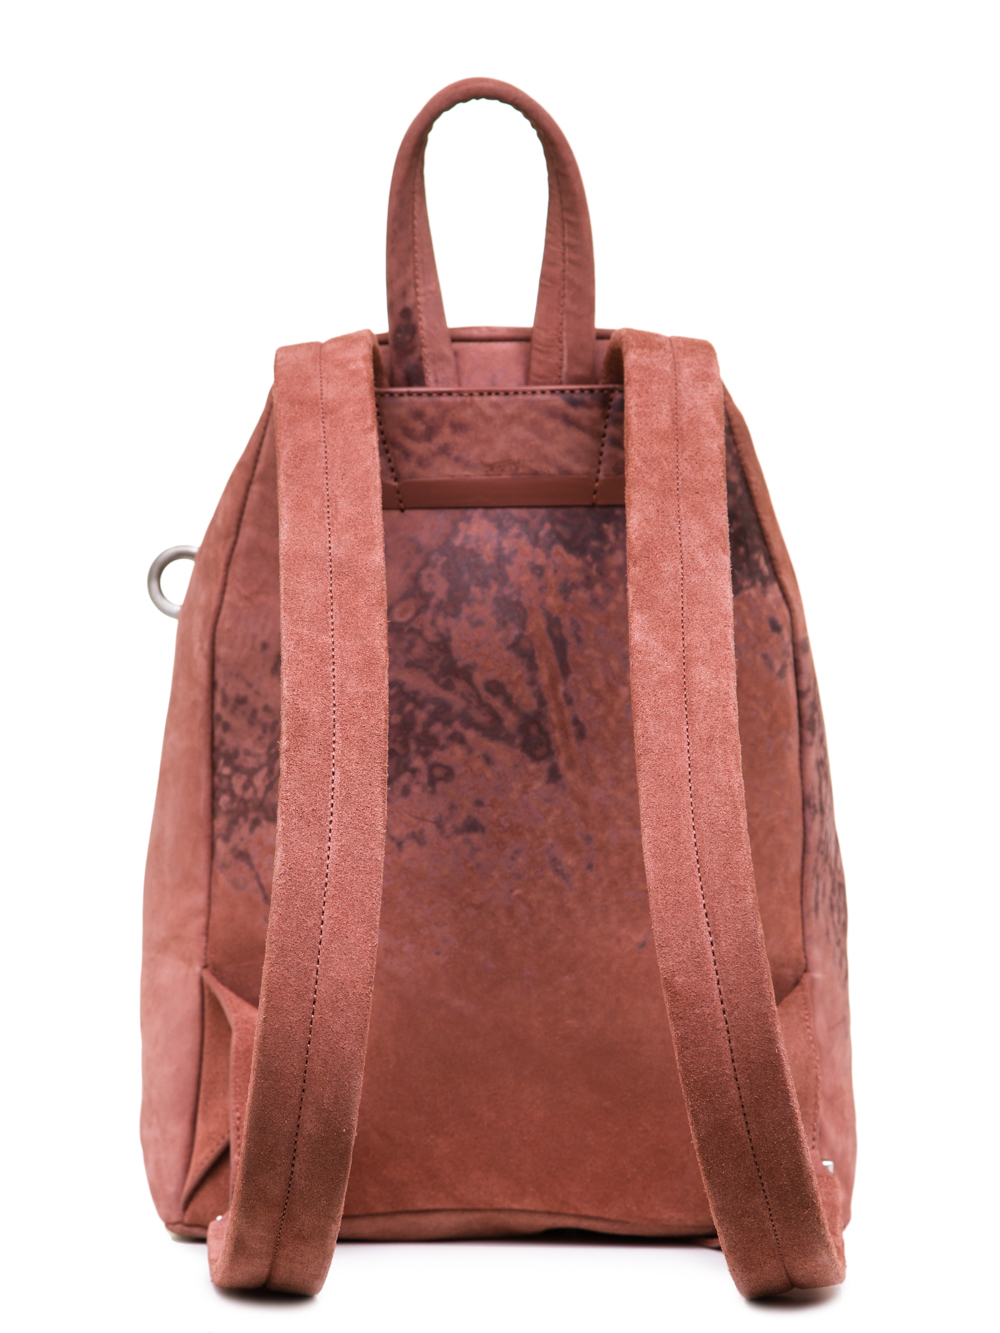 RICK OWENS SS19 BABEL MINI BACKPACK IN CYCLAMEN PINK VEGETAL TANNED HORSE LEATHER